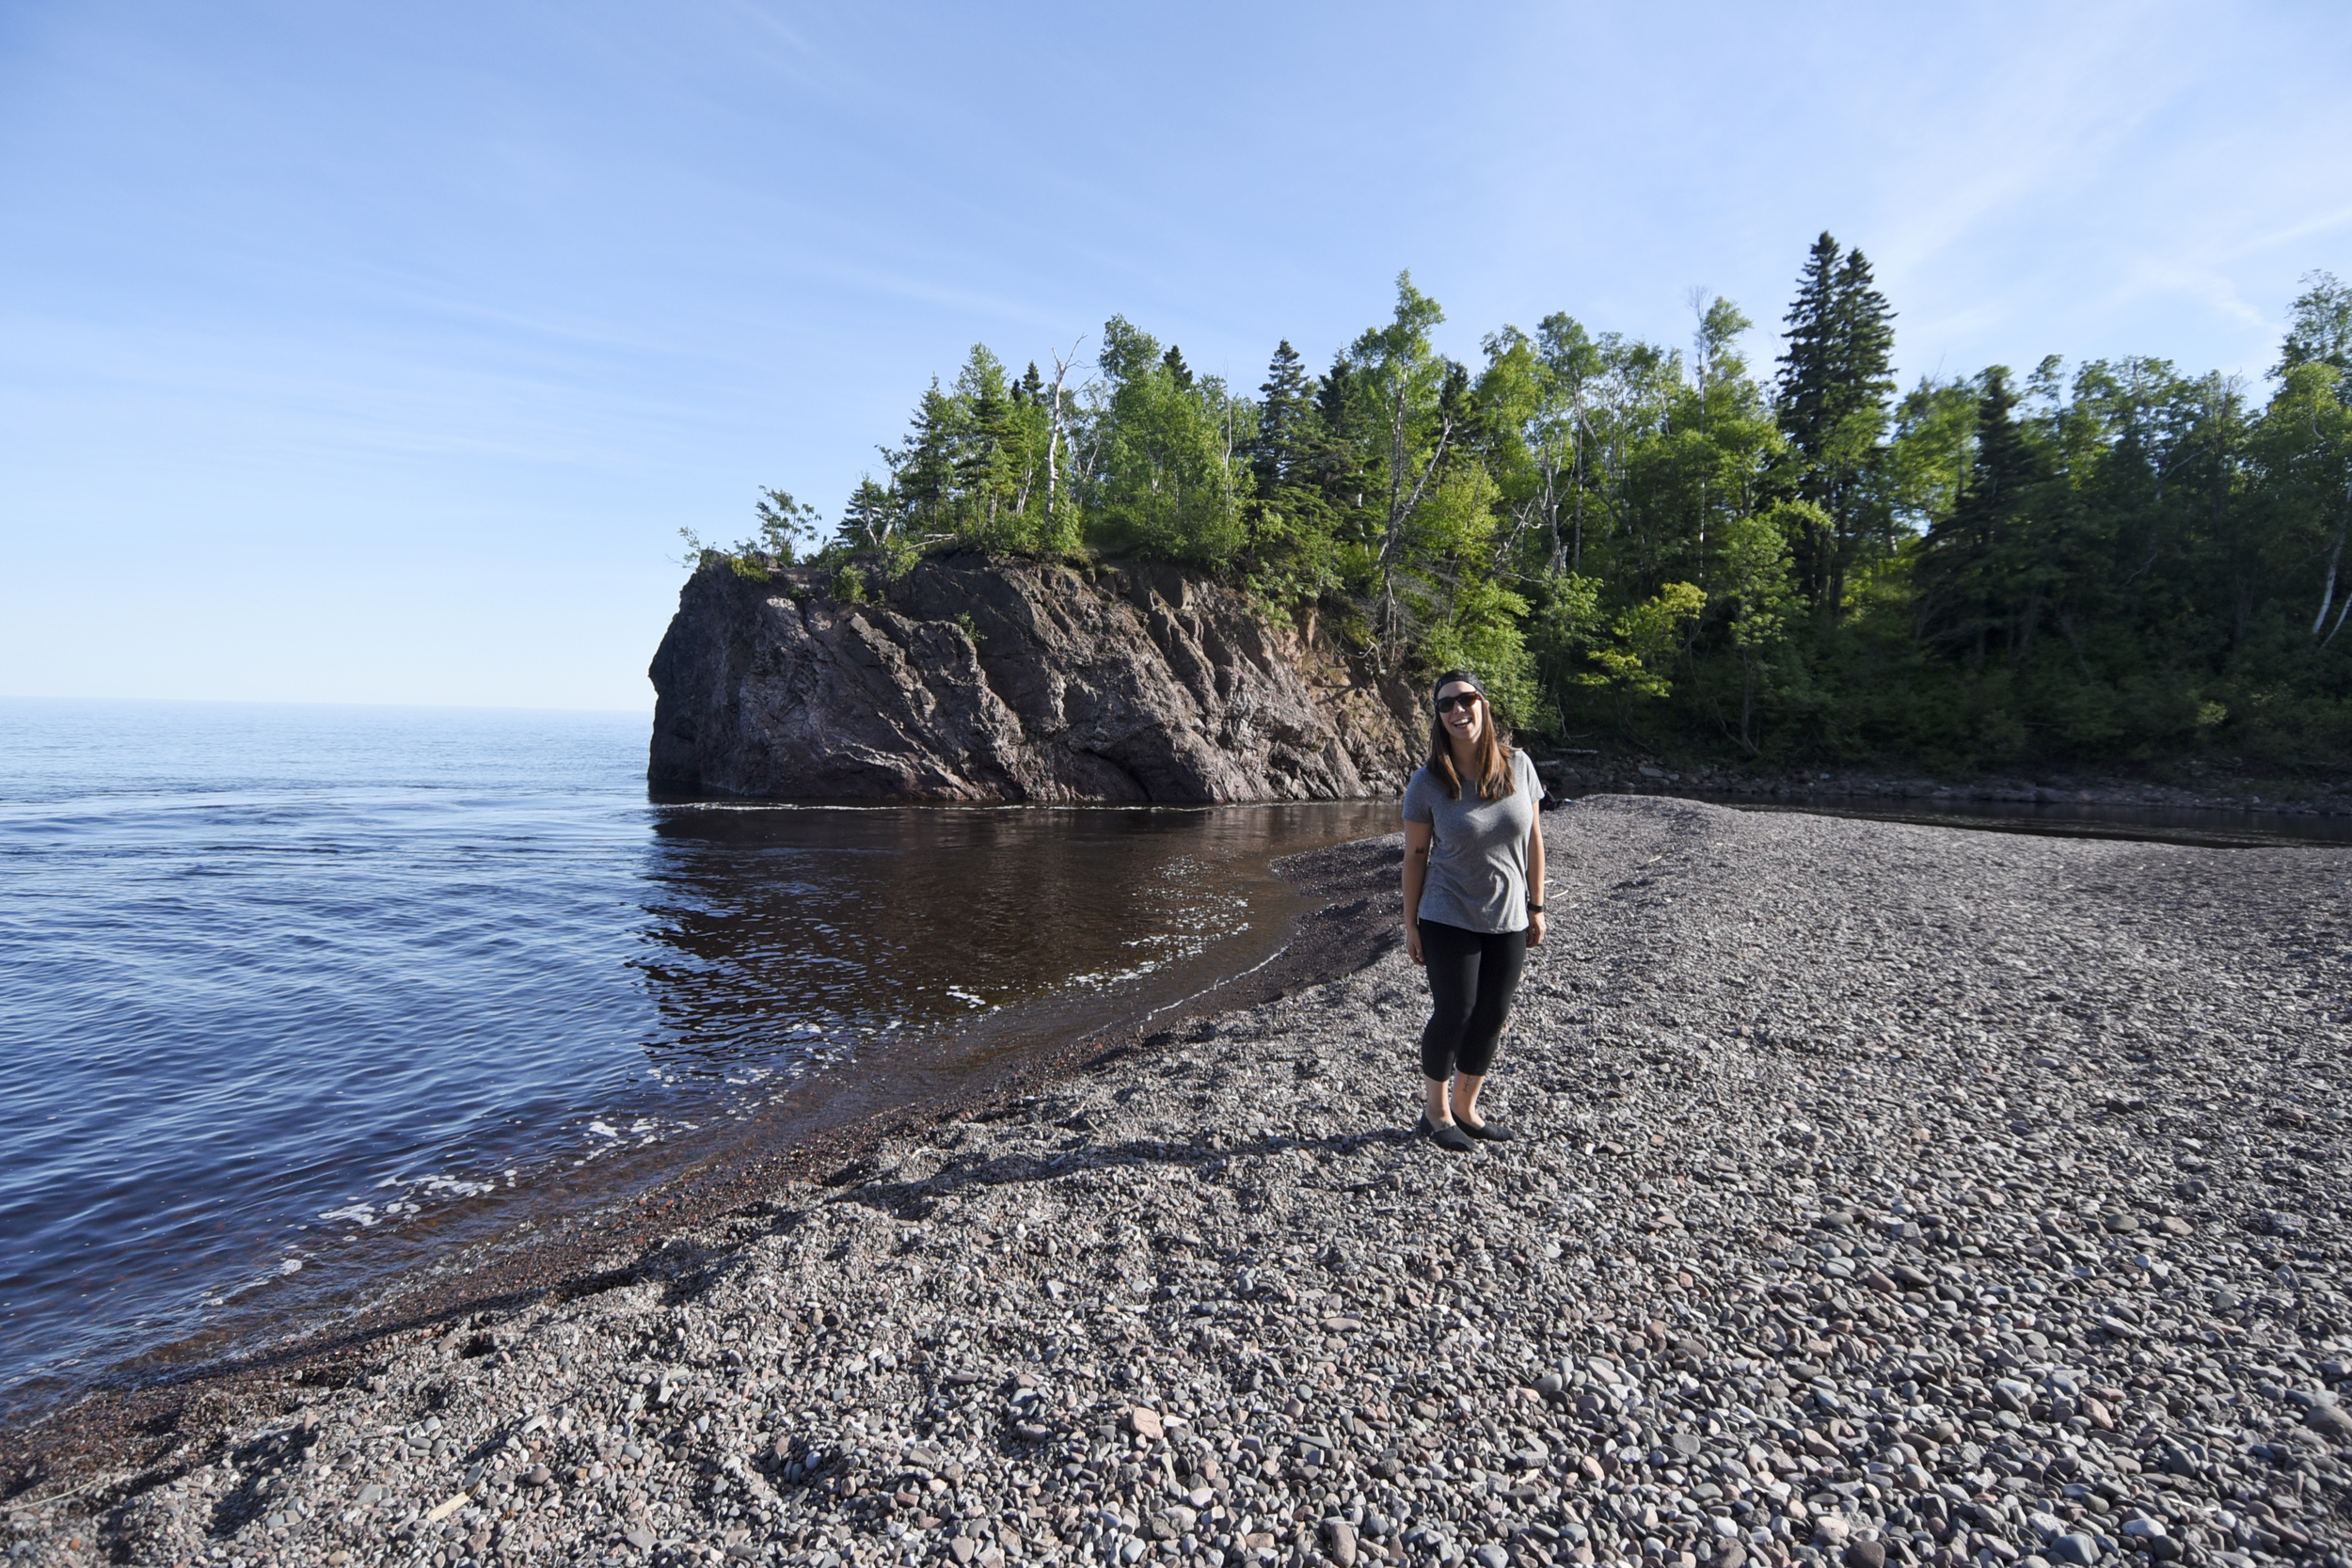 Ayla next to Lake Superior in Tettegouche State Park.